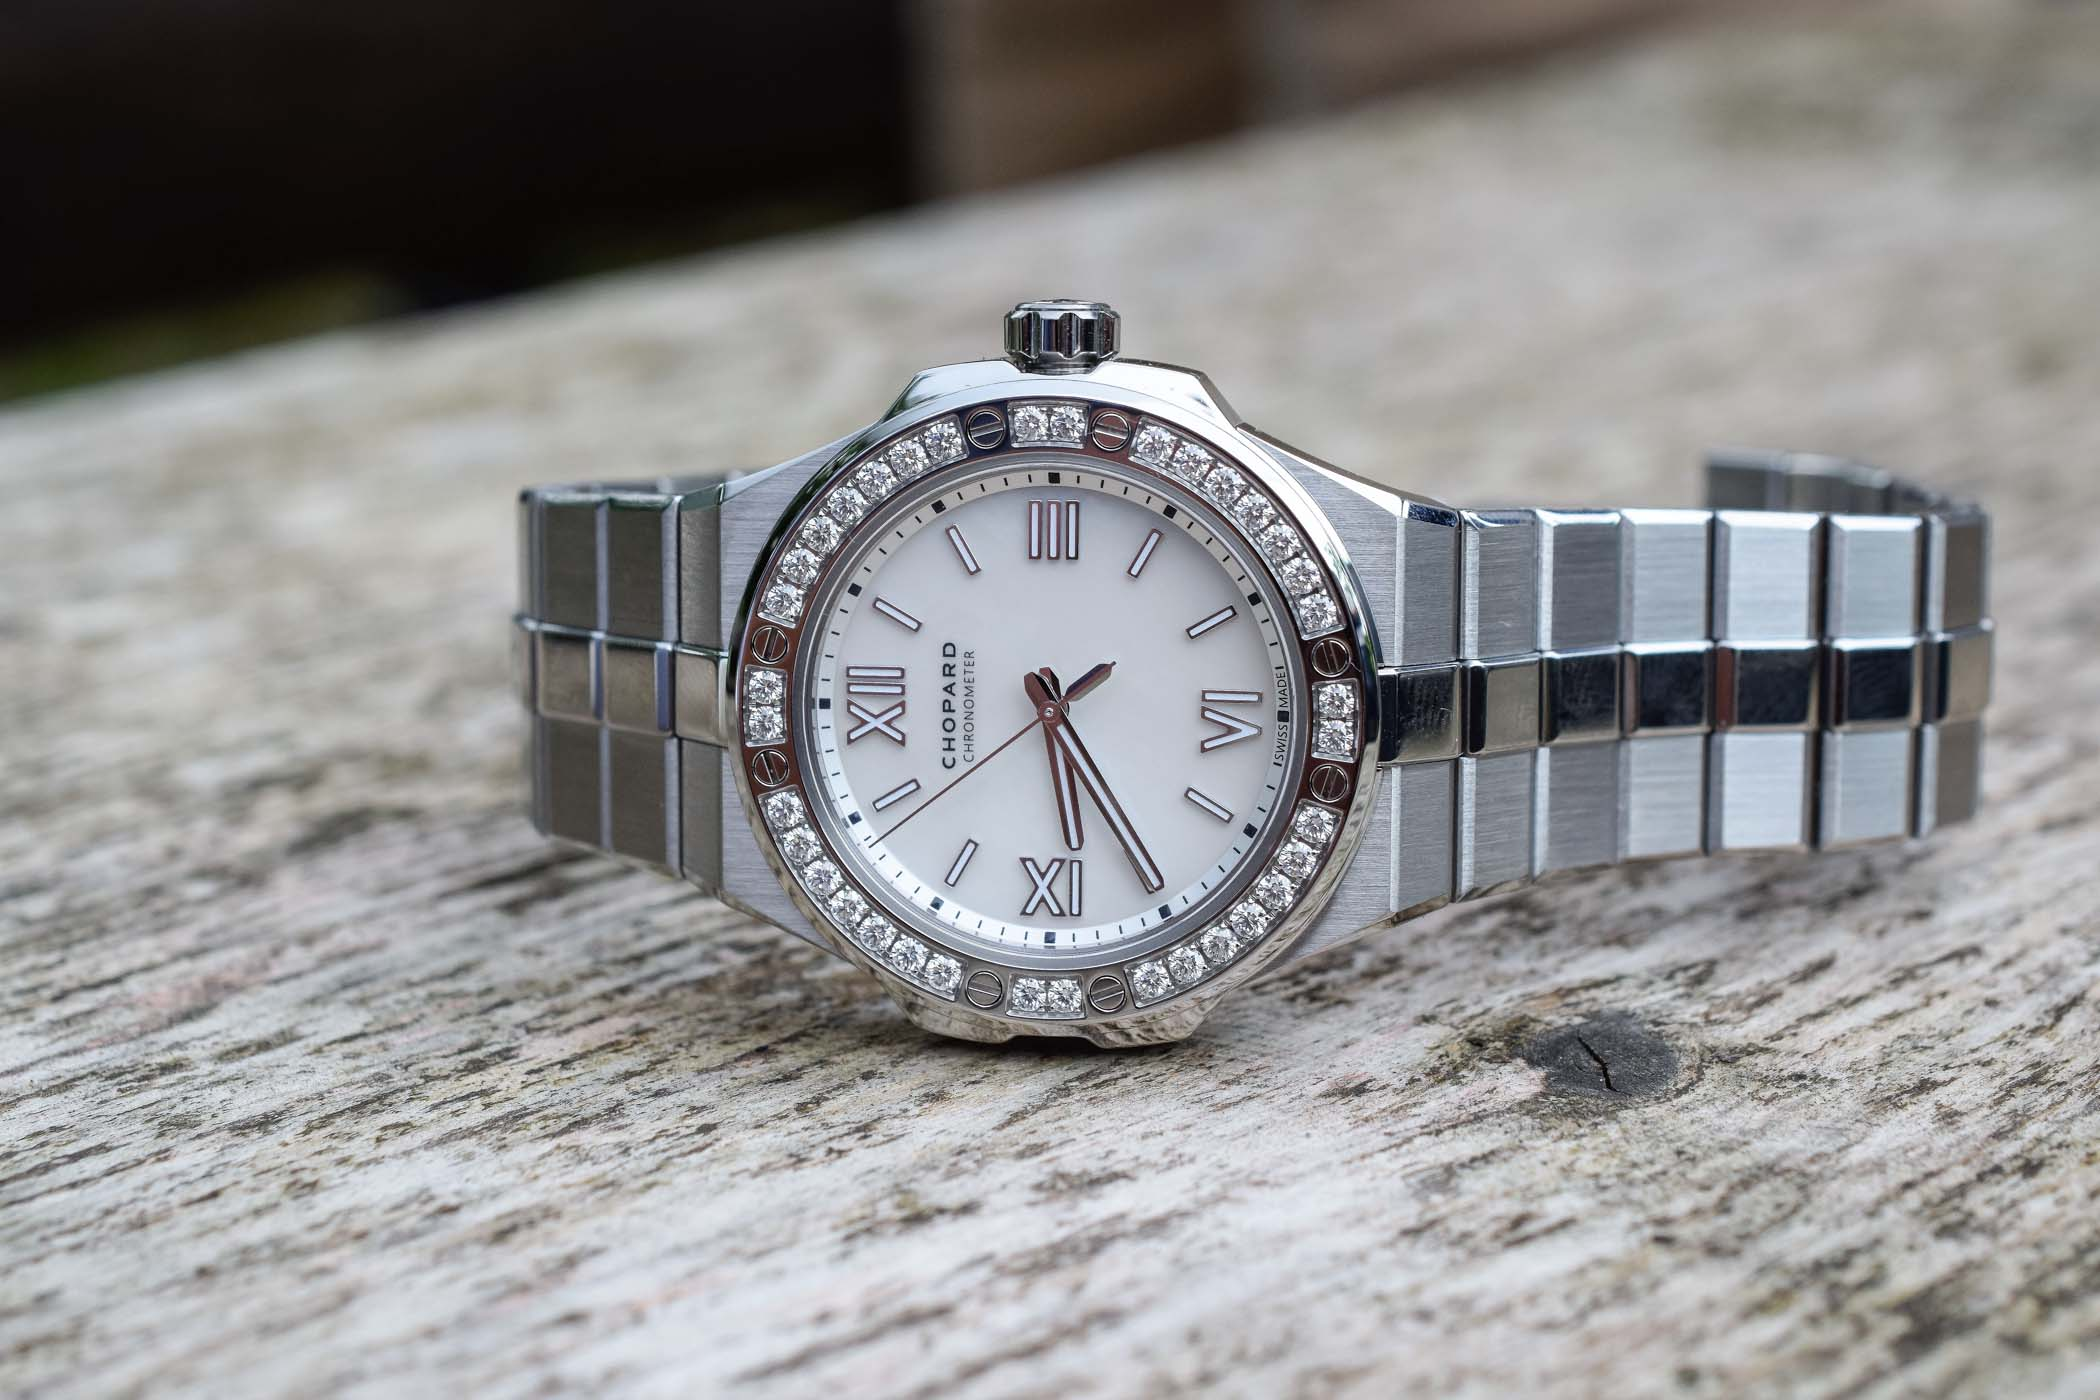 Chopard Alpine Eagle 36mm - Luxury Sports Watch Collection - Review - 2